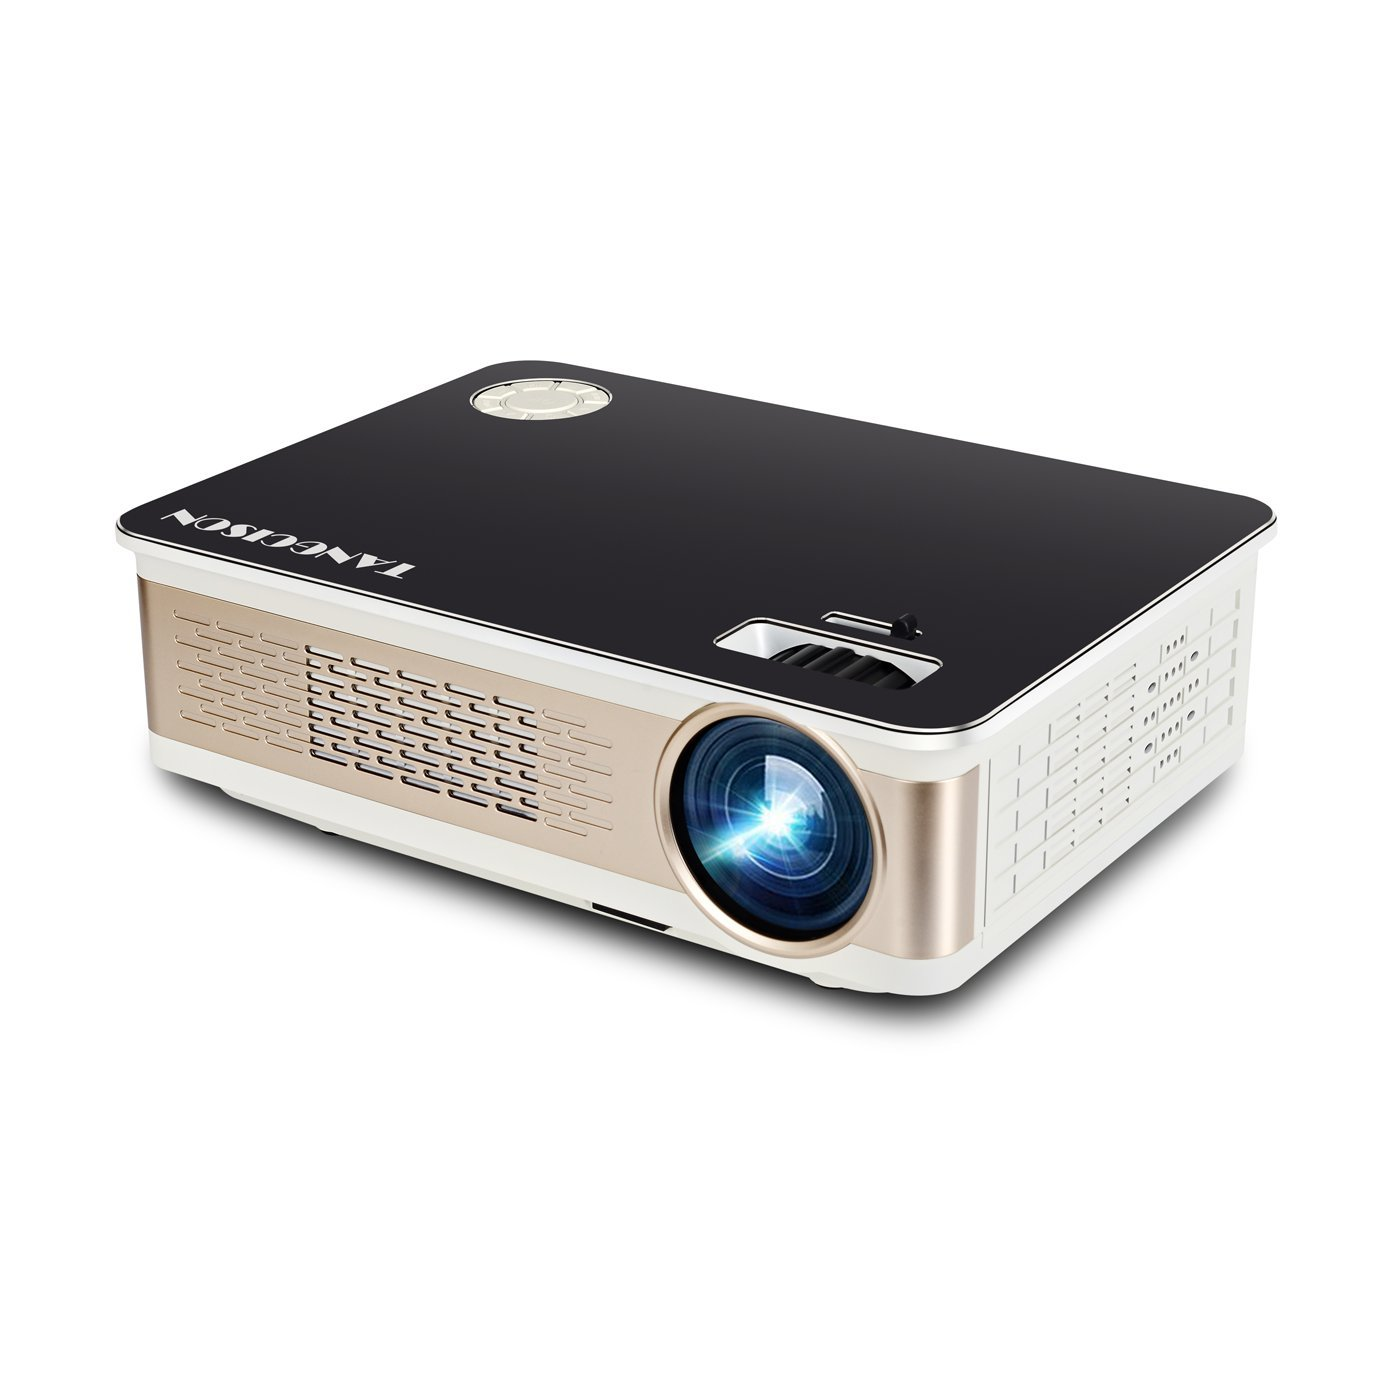 TANGCISON Home Projector Video Projector, LED Christmas Projector 3300Luminous 280'' HD 1080P Projector Home Theater Video Mini Projector Multimedia Home Theater Movies Projector (black) by TANGCISON